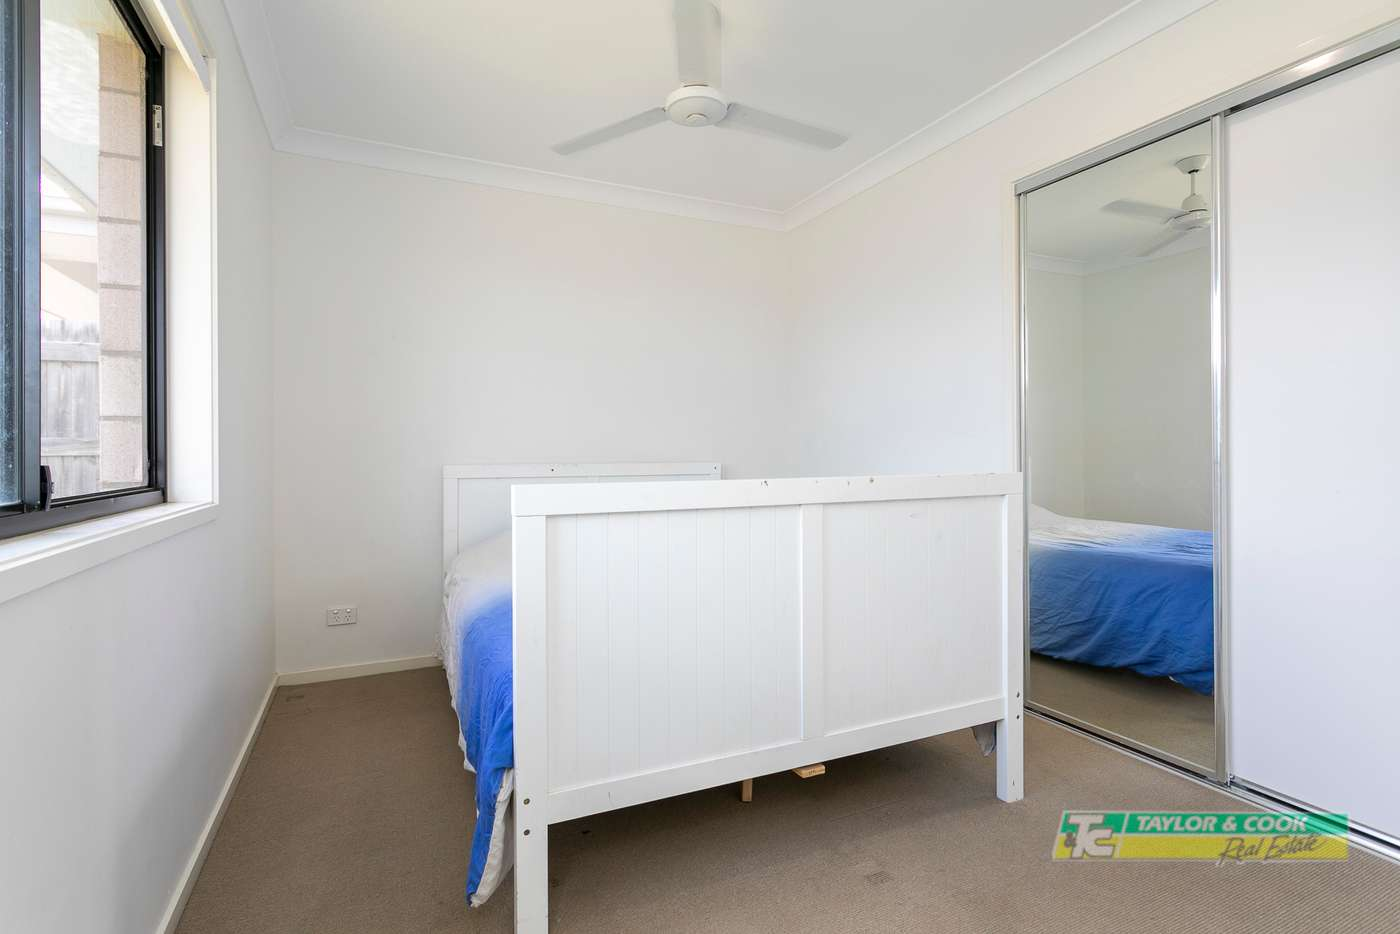 Sixth view of Homely house listing, 6 Massey Street, Yarrabilba QLD 4207